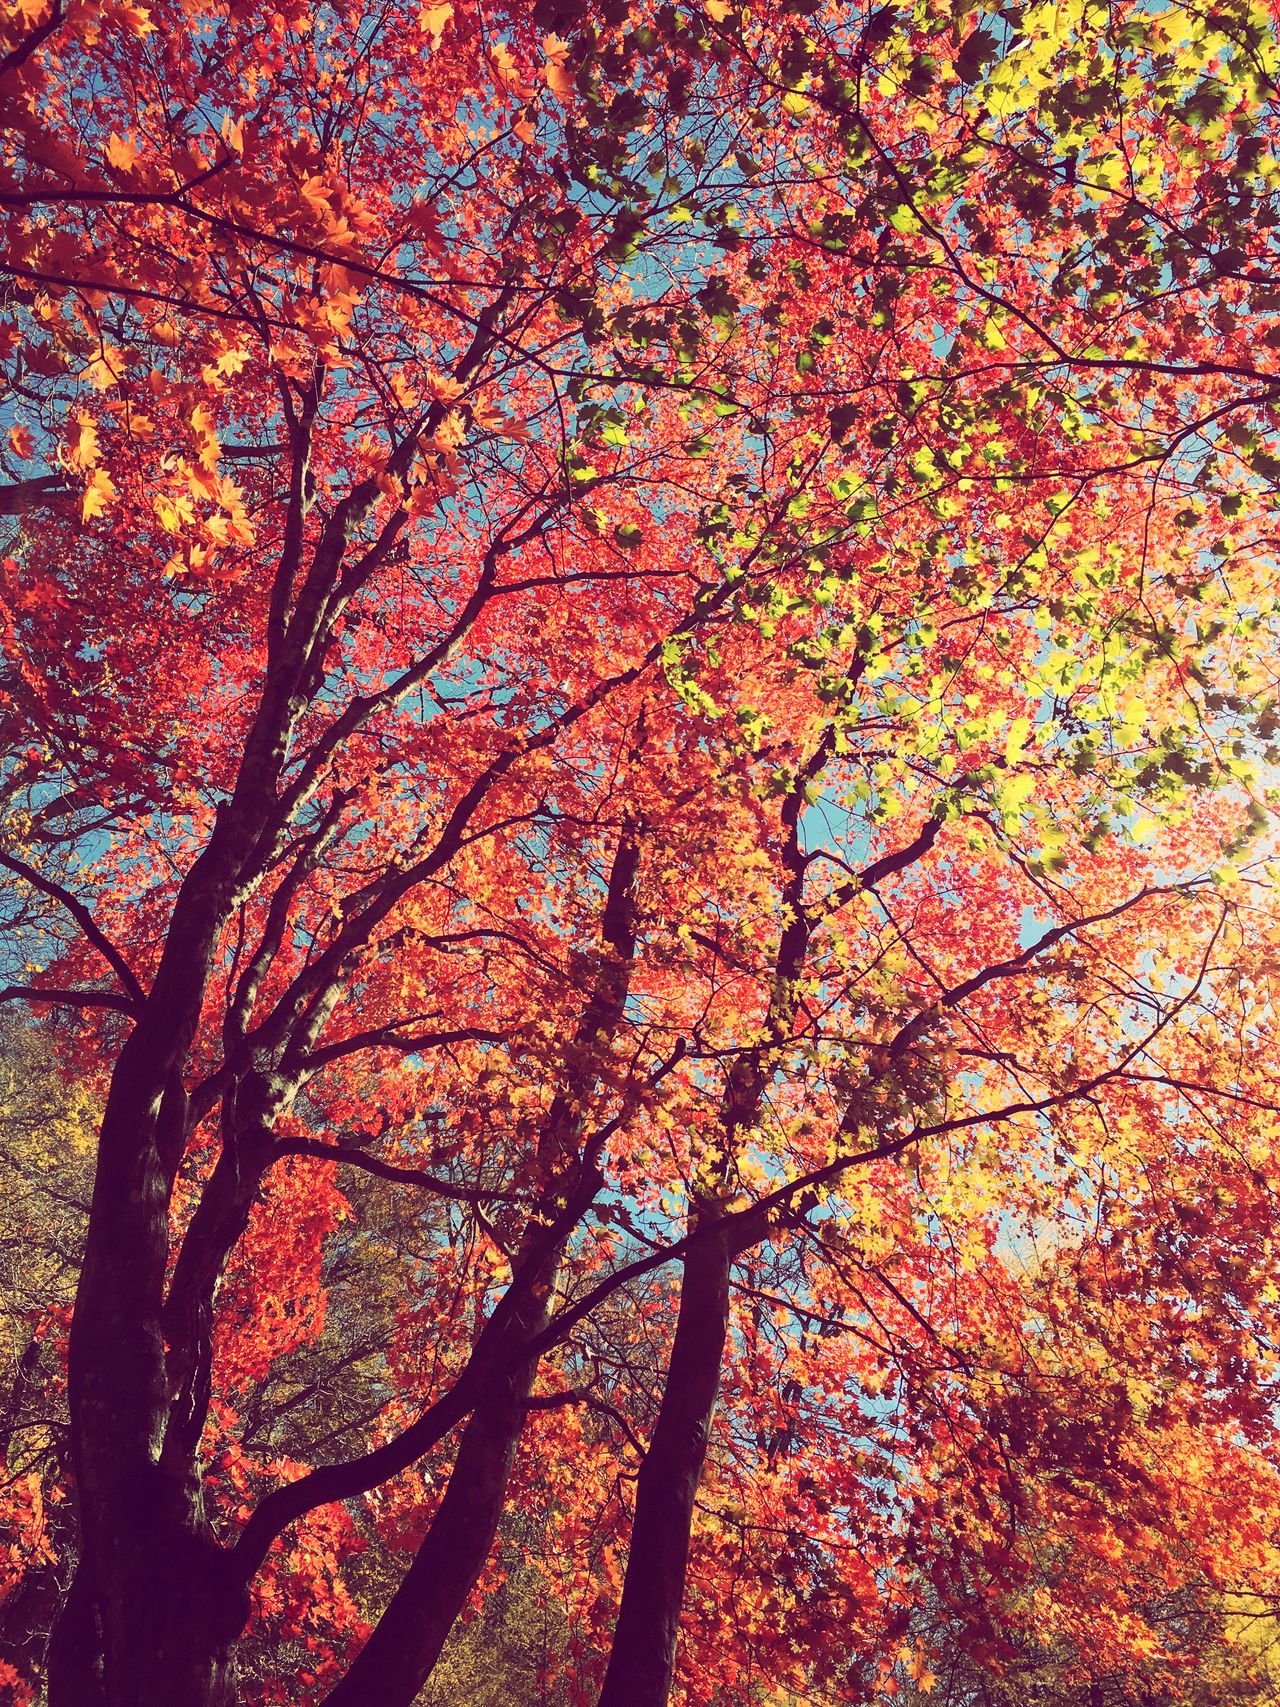 Sunlight Maple Autumn Autumn🍁🍁🍁 Autumn Colors Eye4photography  IPhoneography Enjoying Life Forest EyeEm Best Shots EyeEm Nature Lover The Great Outdoors - 2016 EyeEm Awards EyeEm Gallery EyeEm Best Shots - Nature Nature Nature Photography Naturelovers Nature_collection